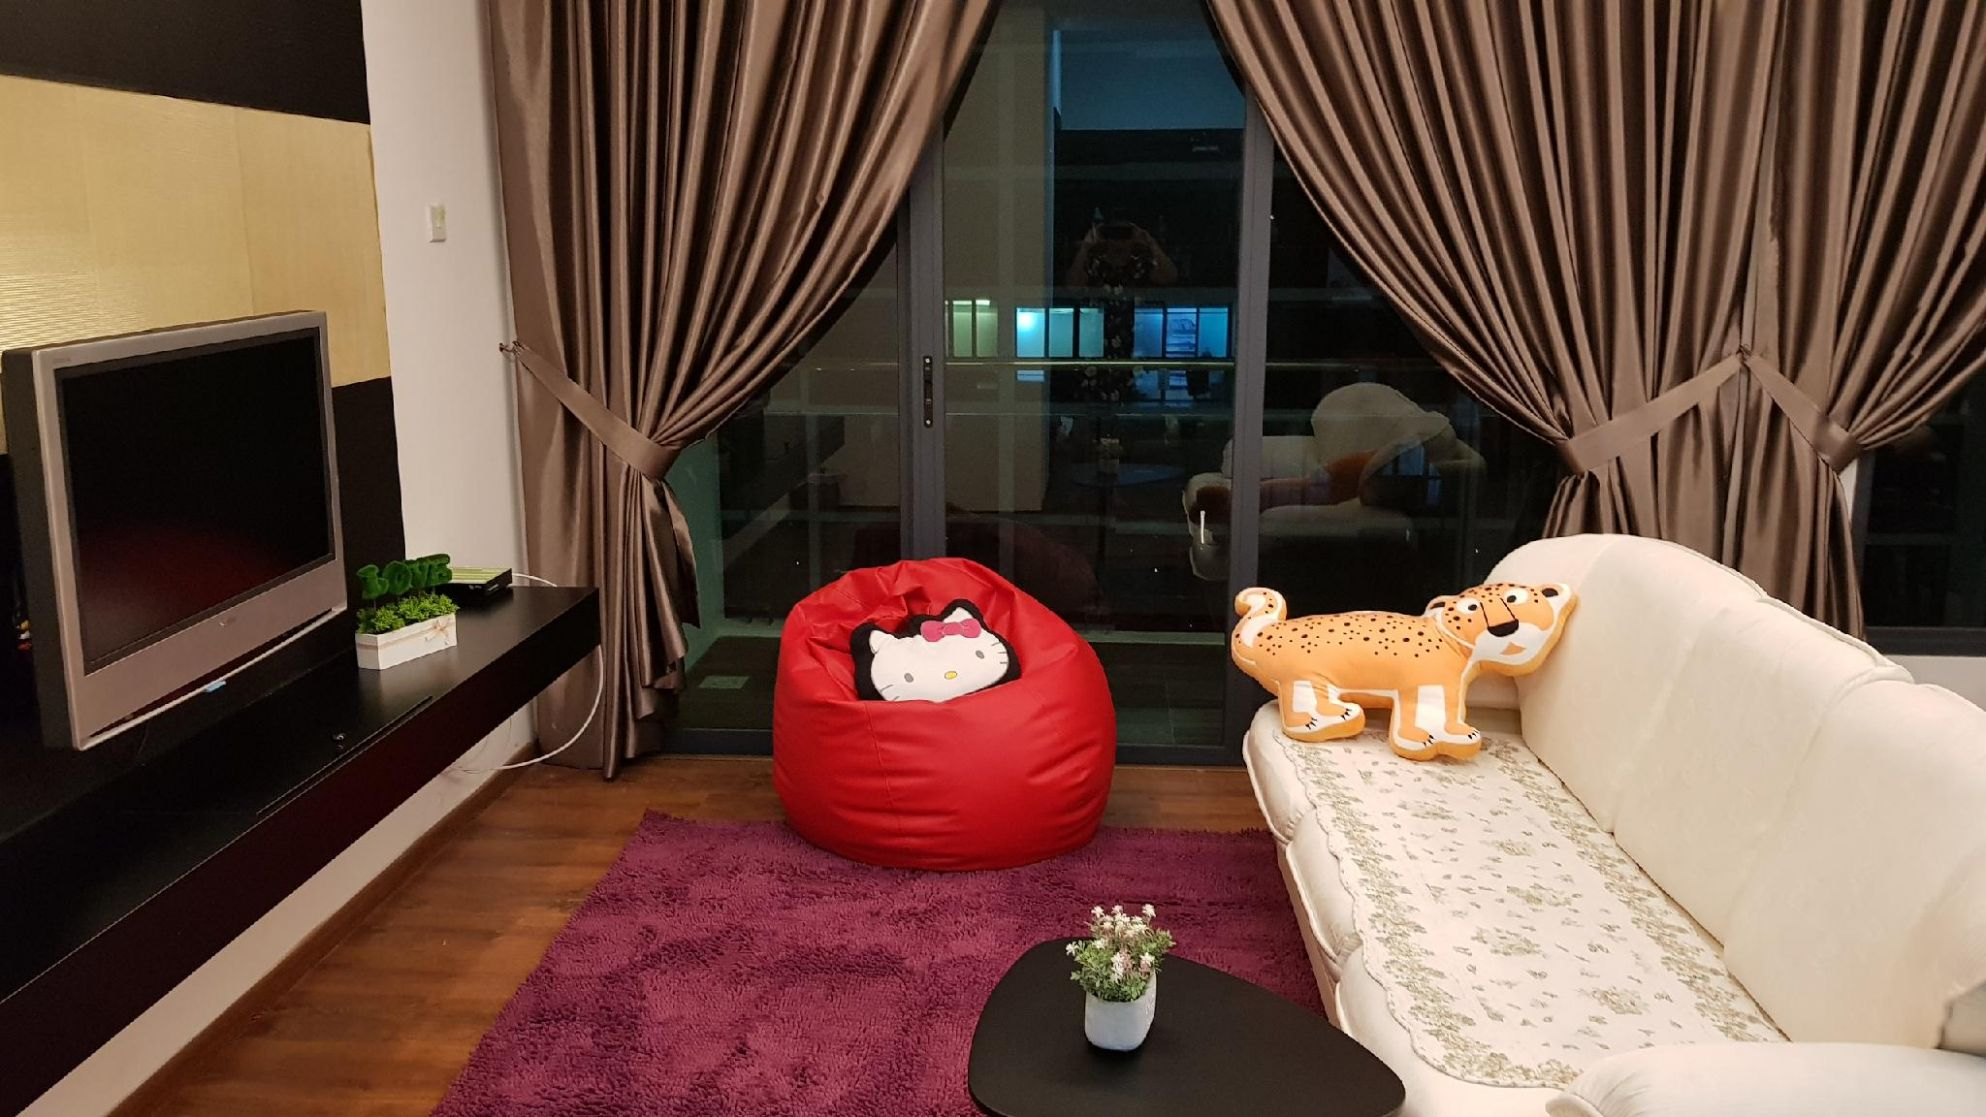 Comfy Stay @ Vivacity Megamall, Kuching - Booking Deals, Photos ..